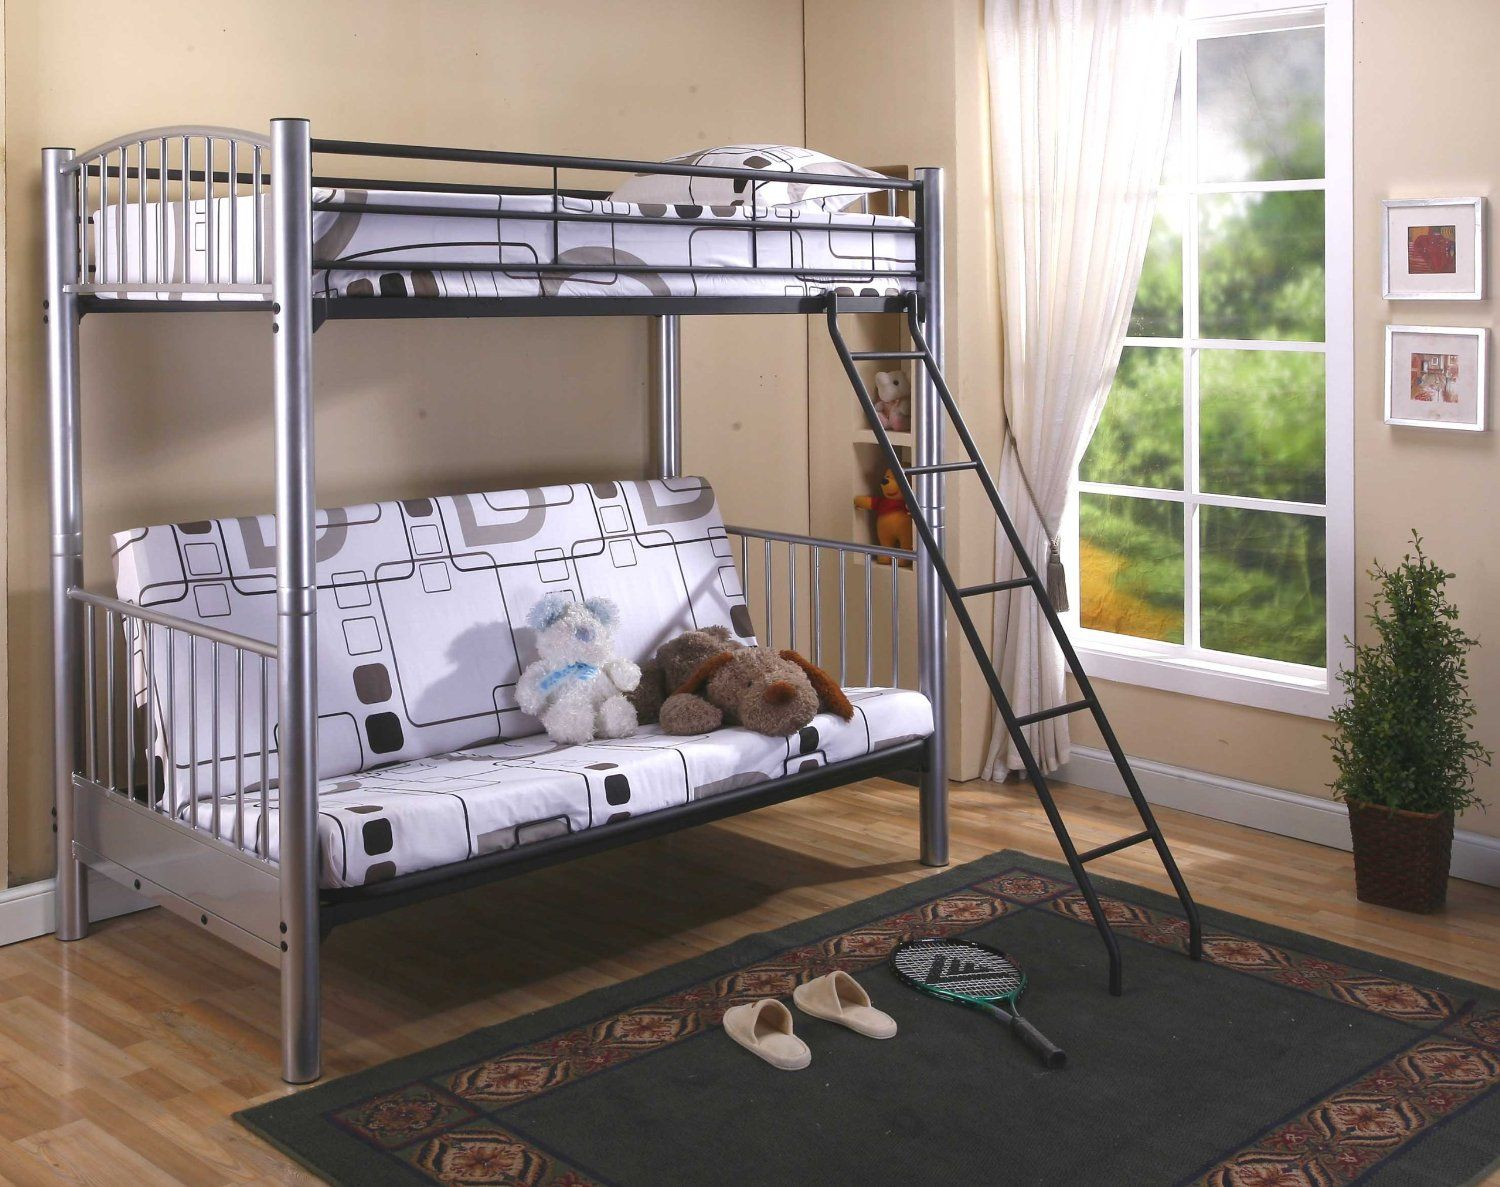 Amazon Com Twin Full Silver Finish Metal Convertible Futon Bunk Bed Futon Bunk Bed Frames Bunk Bed Designs Girls Loft Bed Loft Beds For Teens